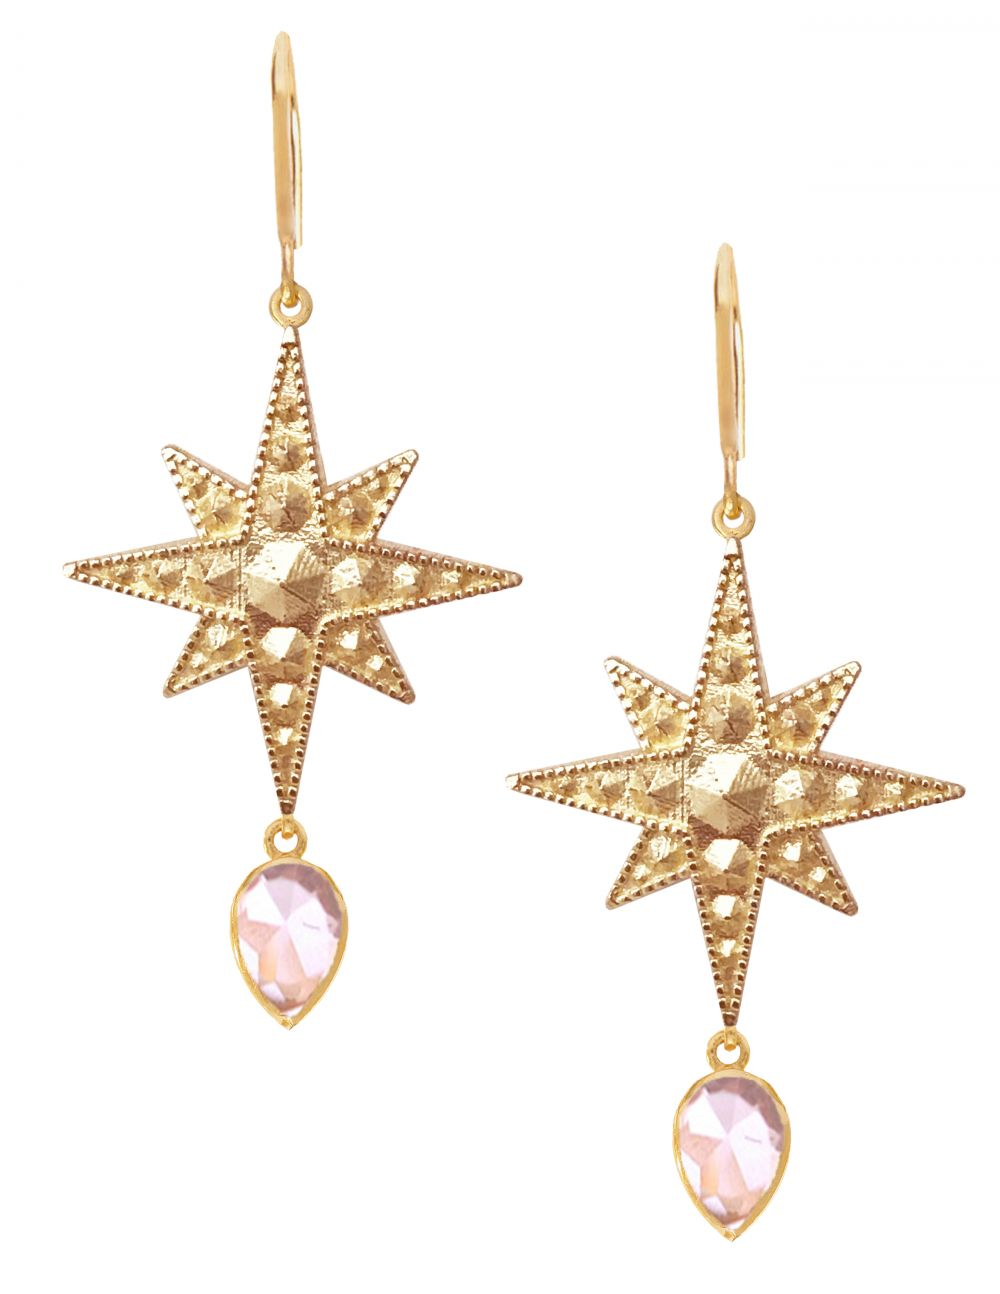 Sirius Earrings<br /><i><small>18K Gold Plated with Rose Quartz</small></i><br />